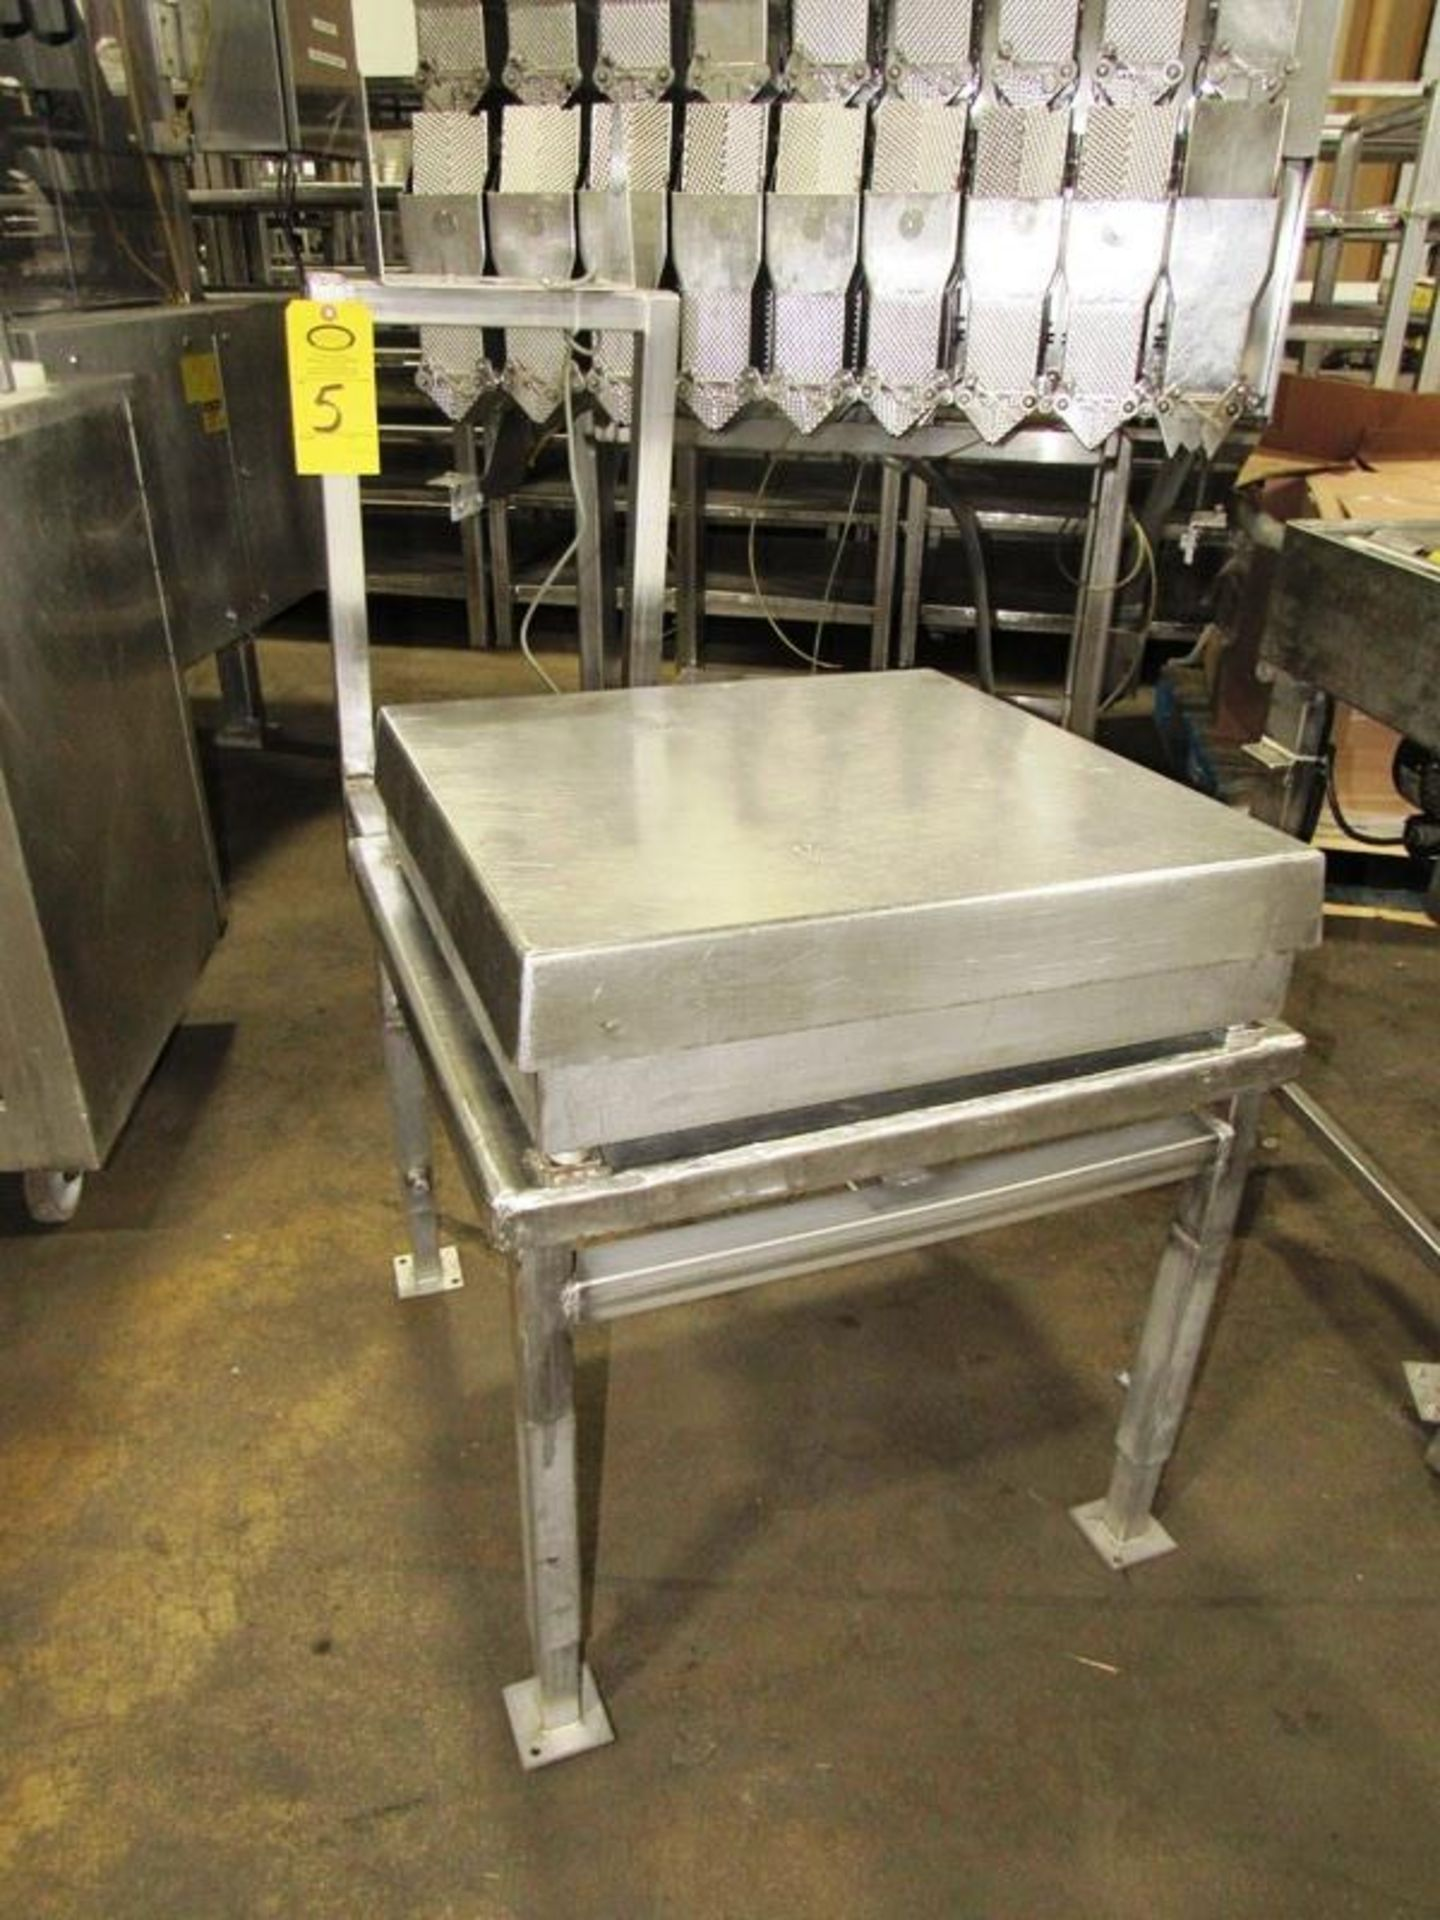 """Stainless Steel Scale, 24"""" X 24"""" top, no scale head on stand, Located in Plano, Illinois (Equipment"""